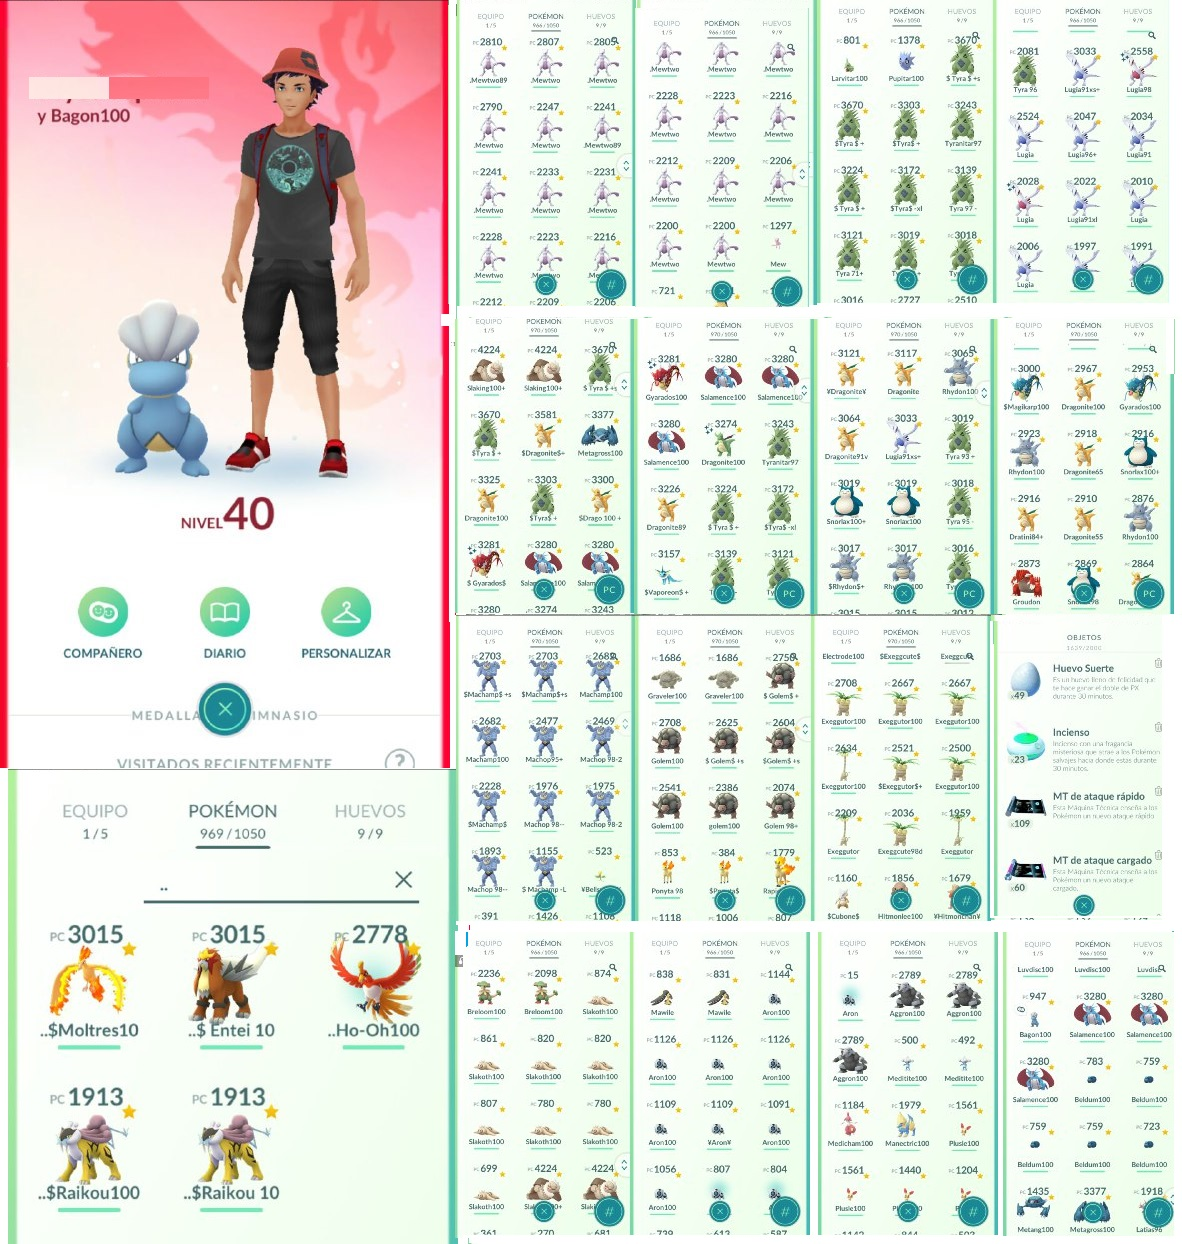 Selling] Legit acc level 40 all 100iv collection